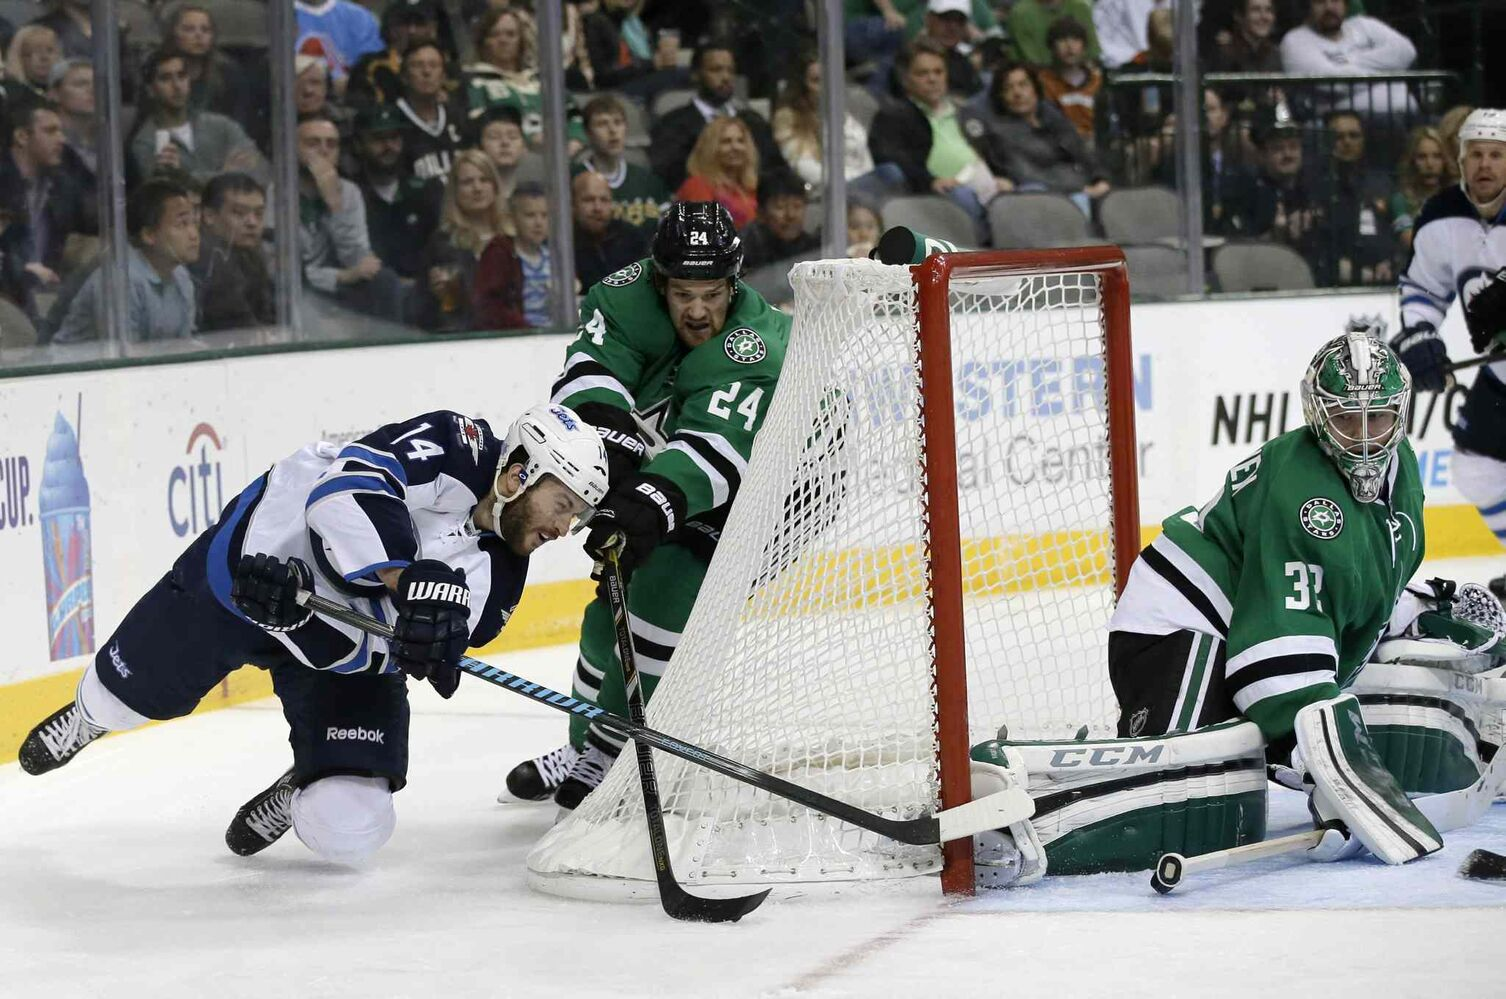 Winnipeg Jets' Anthony Peluso (left) dives to take a shot around the net against Dallas Stars goalie Kari Lehtonen (right) as Jordie Benn gives chase. (Tony Gutierrez / The Associated Press)